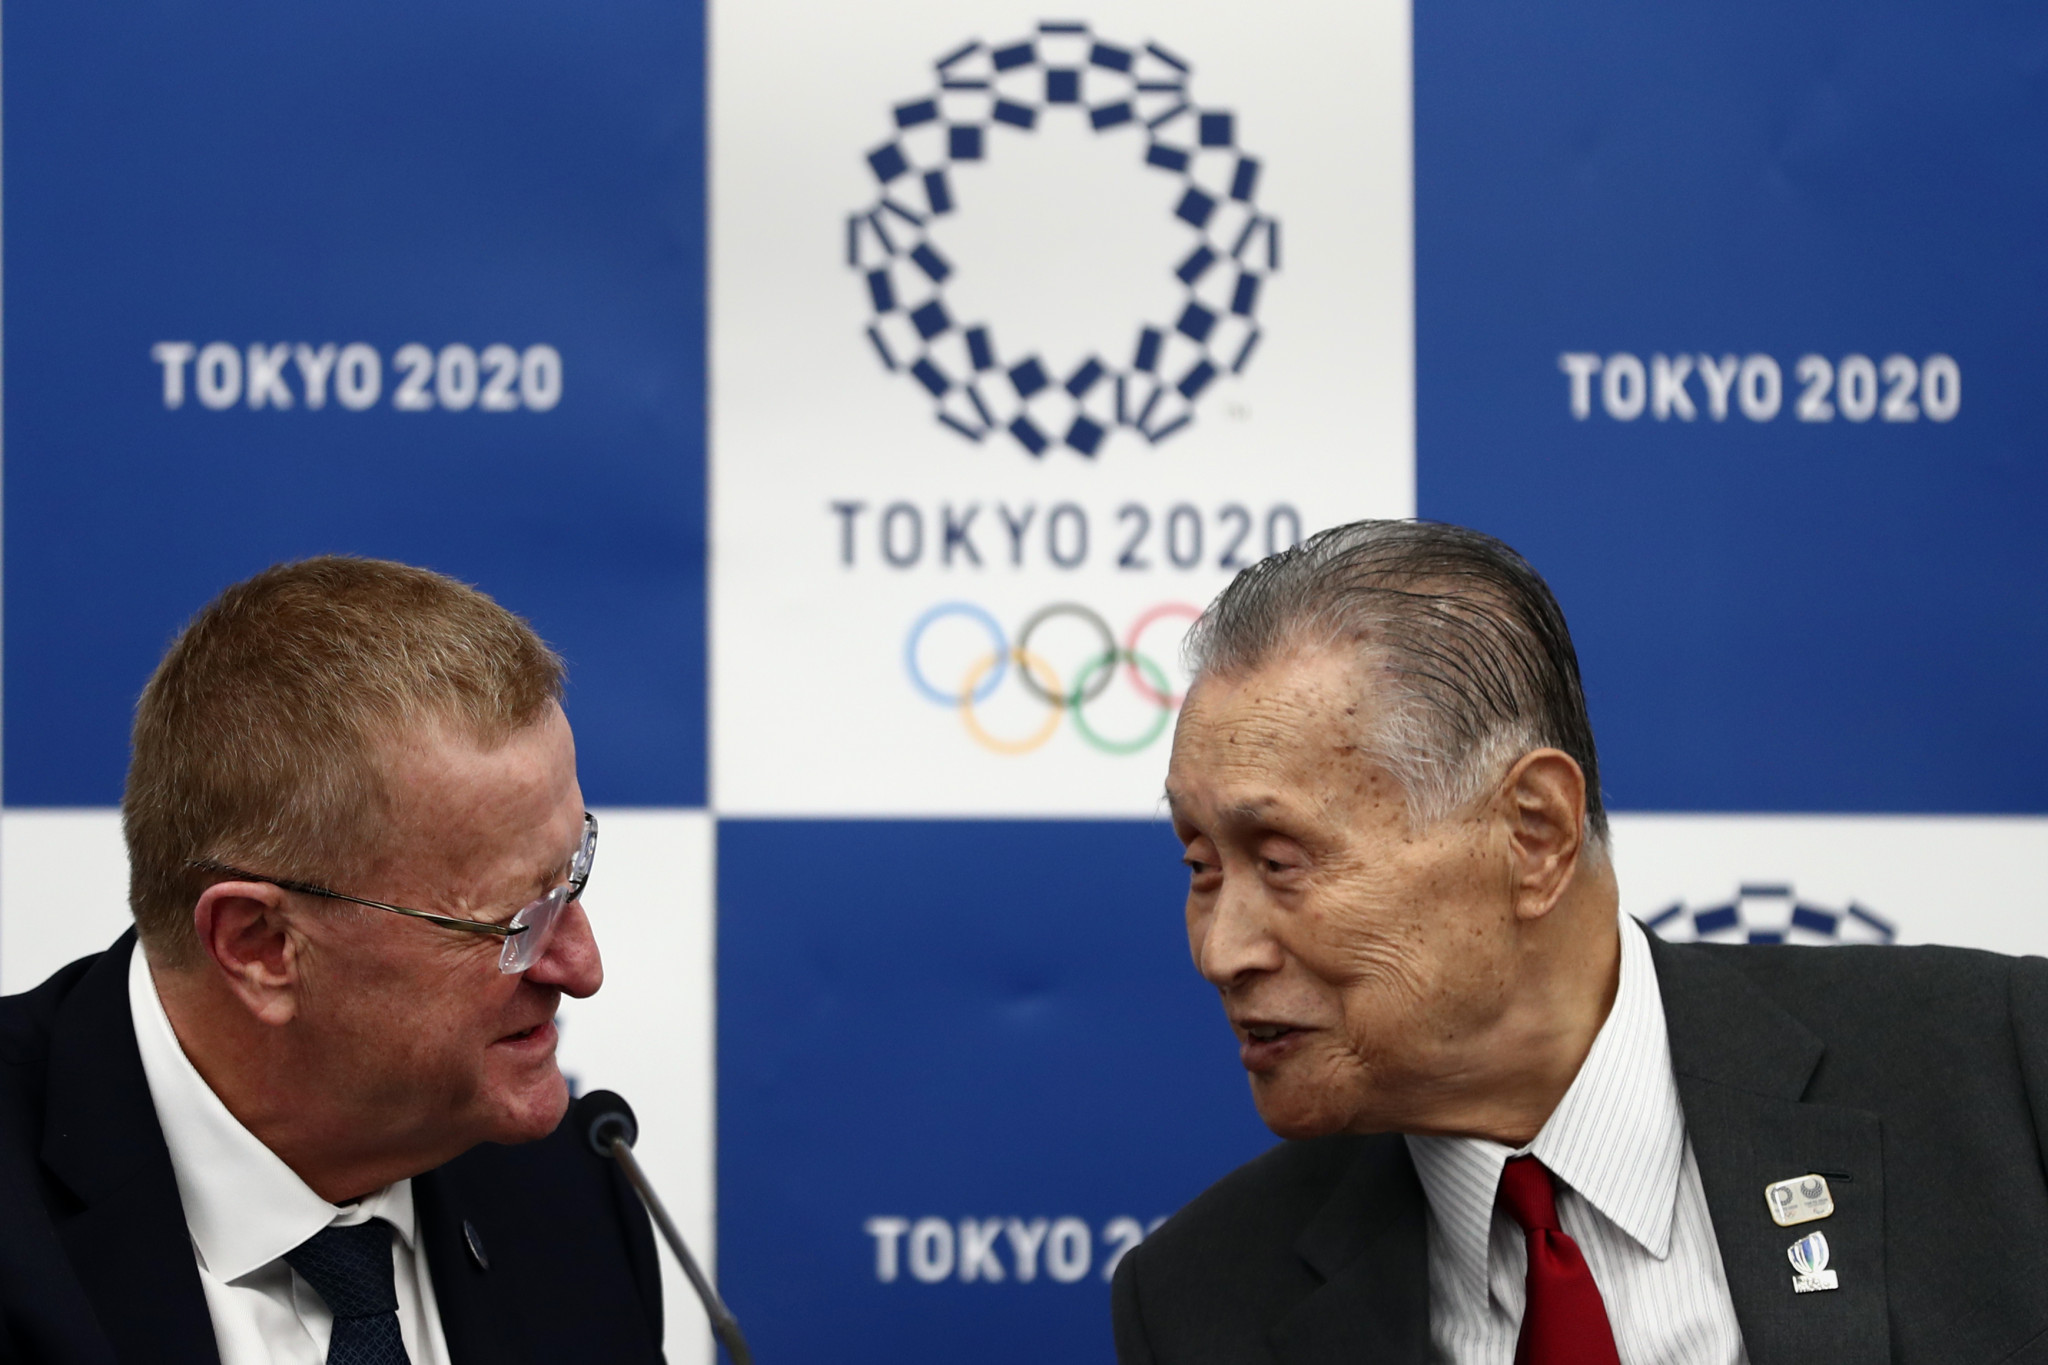 Transport and heat measures discussed as IOC Coordination Commission conclude visit with praise for Tokyo 2020 plans